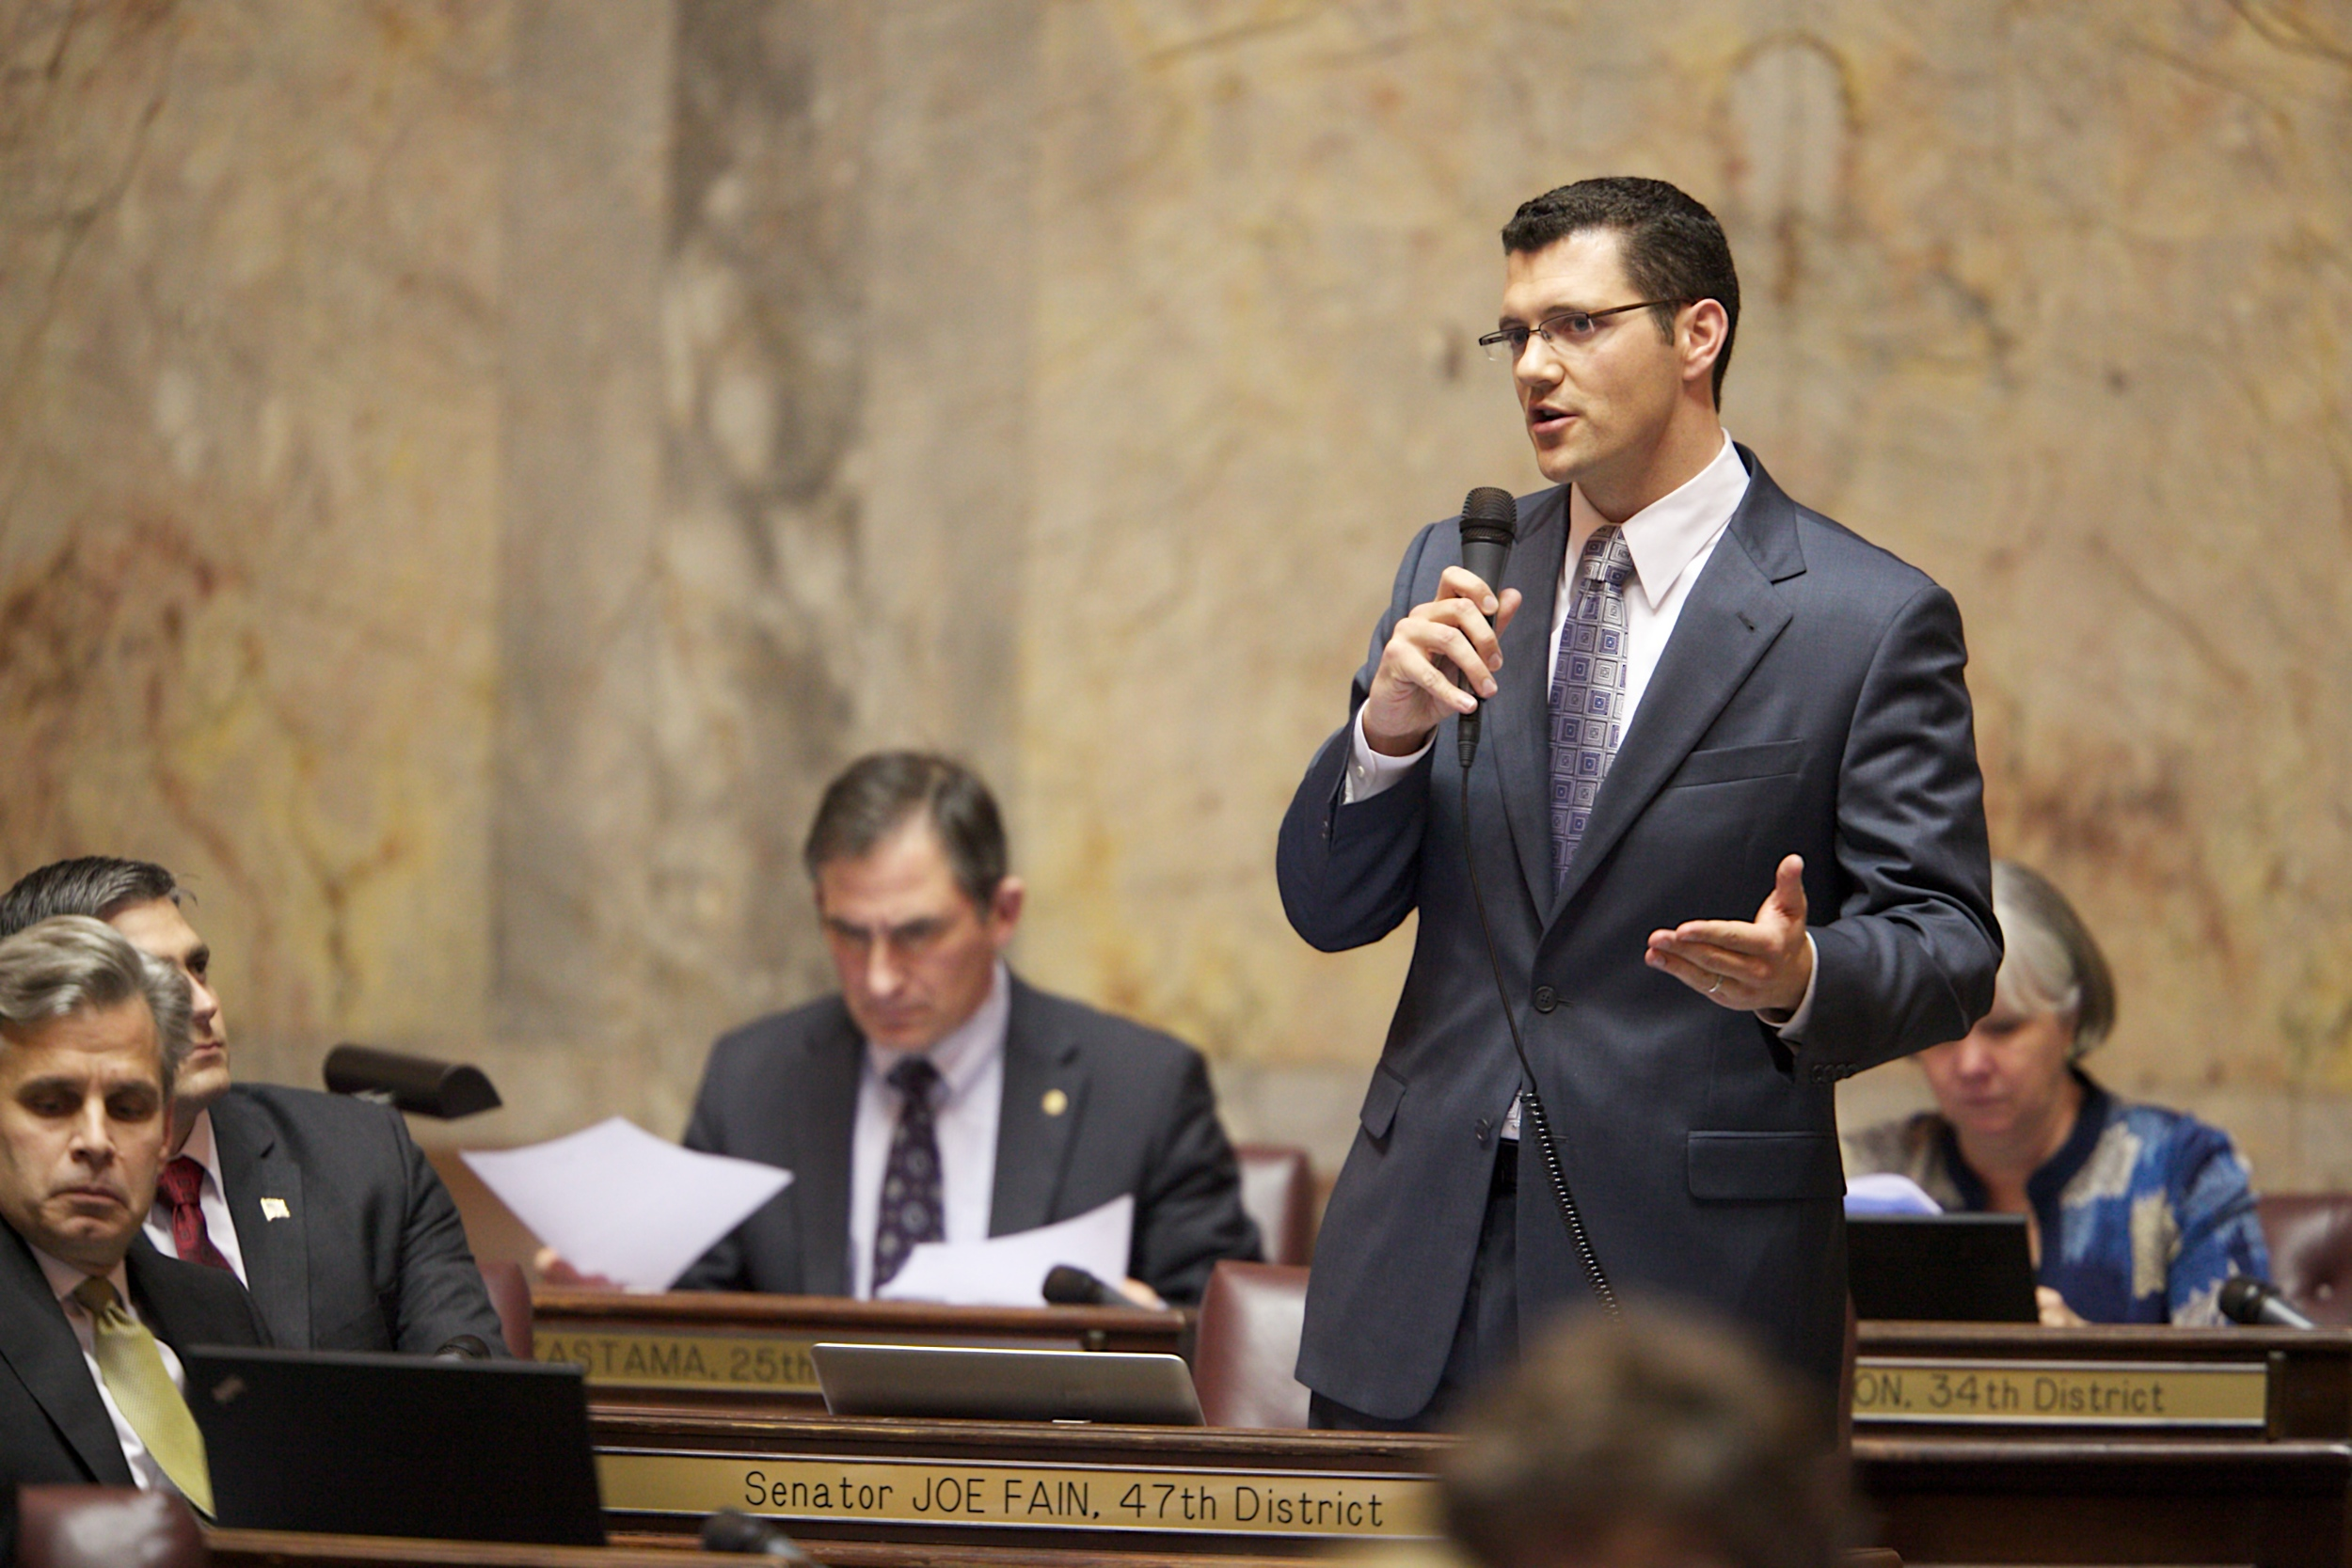 Joe speaking on the floor of the Washington State Senate.